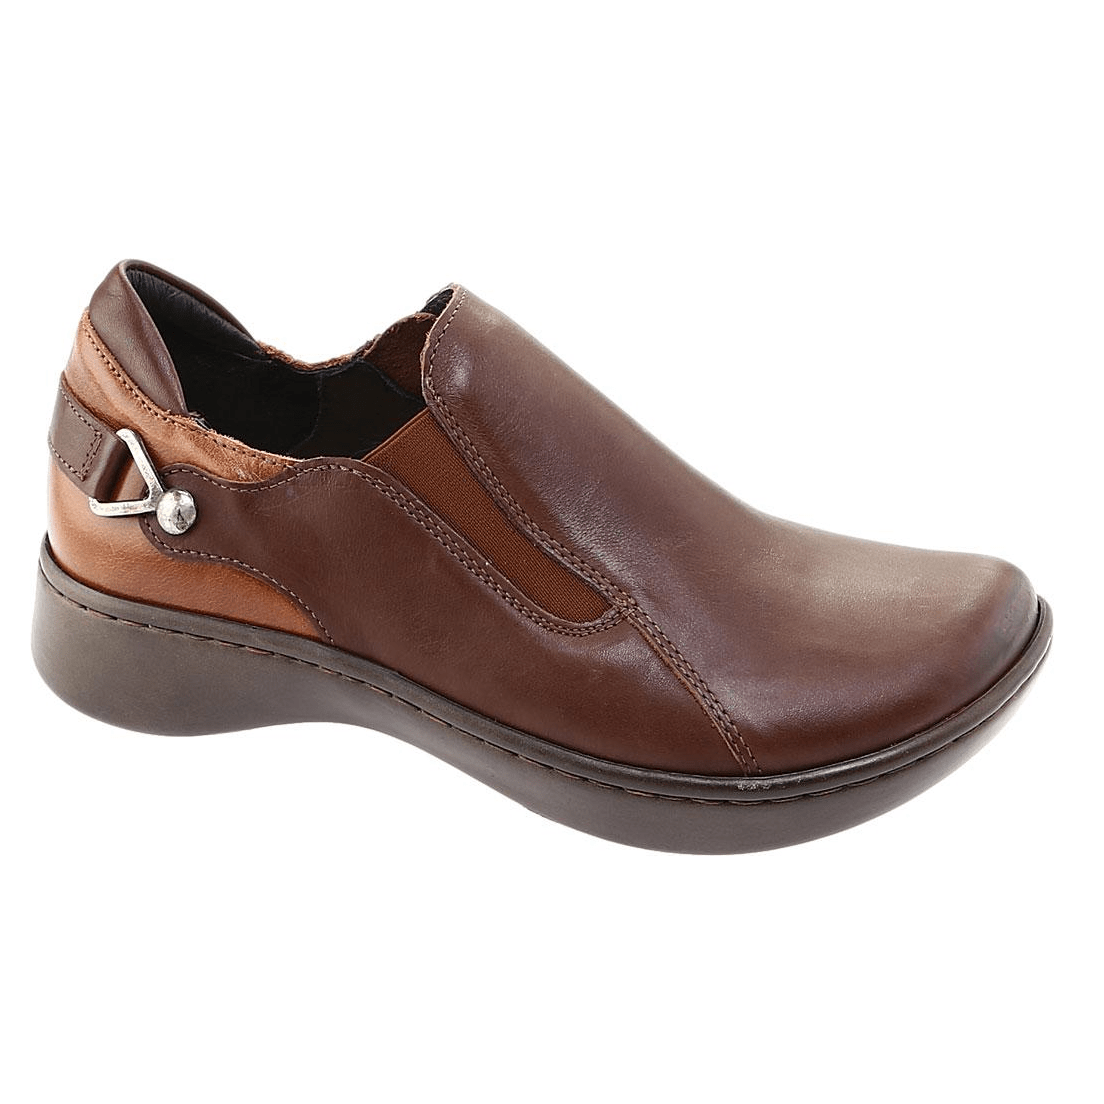 Naot Nautilus | Women's Leather Contouring Comfy Slip On Shoe | Simons